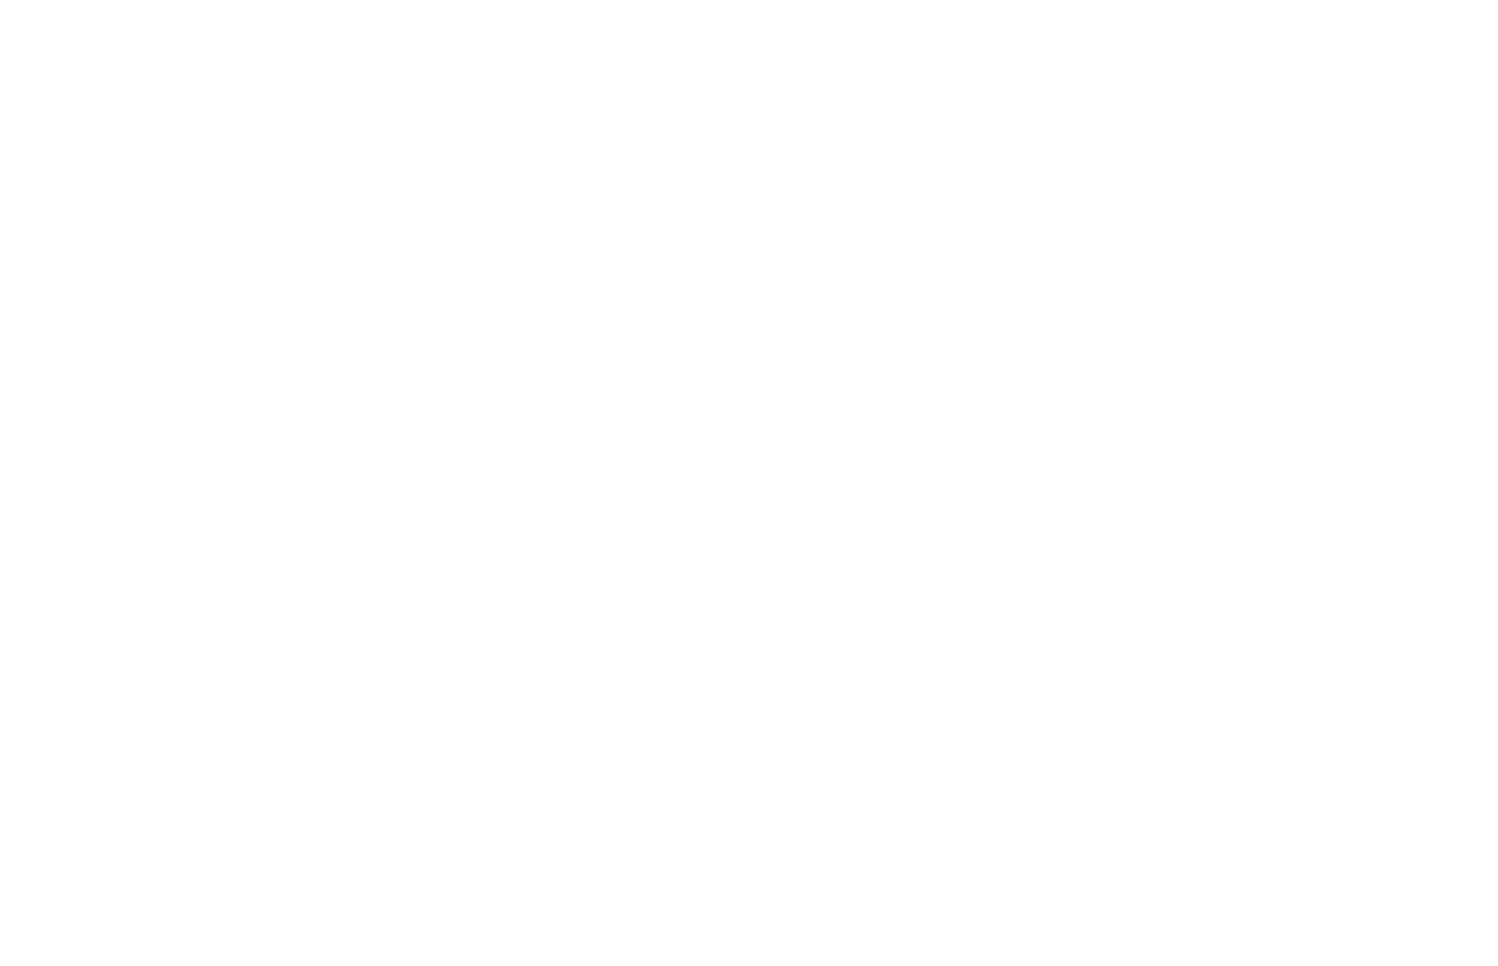 STAR CLEANING